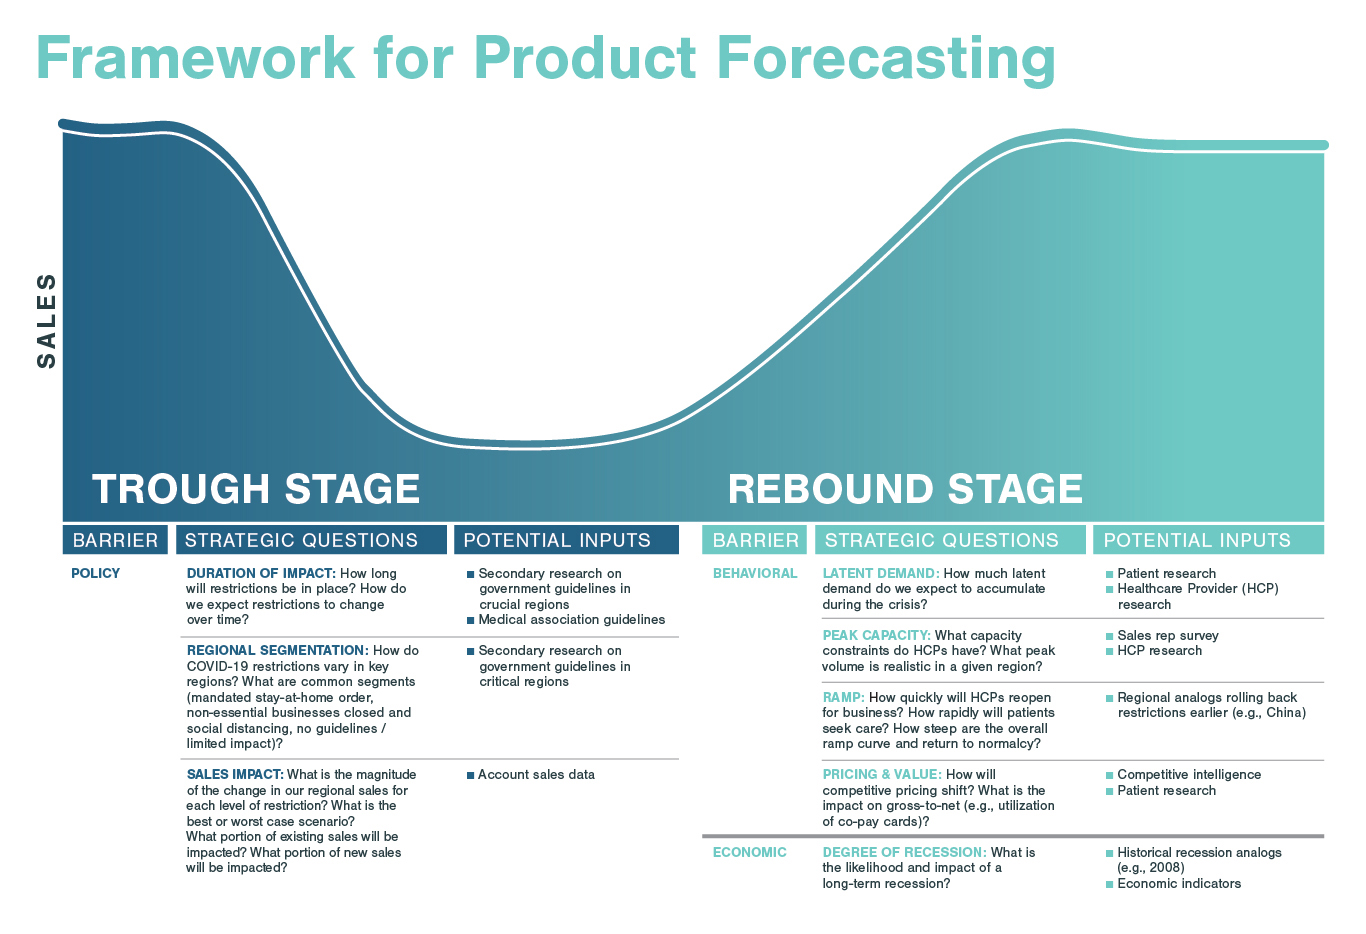 Adapting In COVID-19: A Product Forecasting Framework